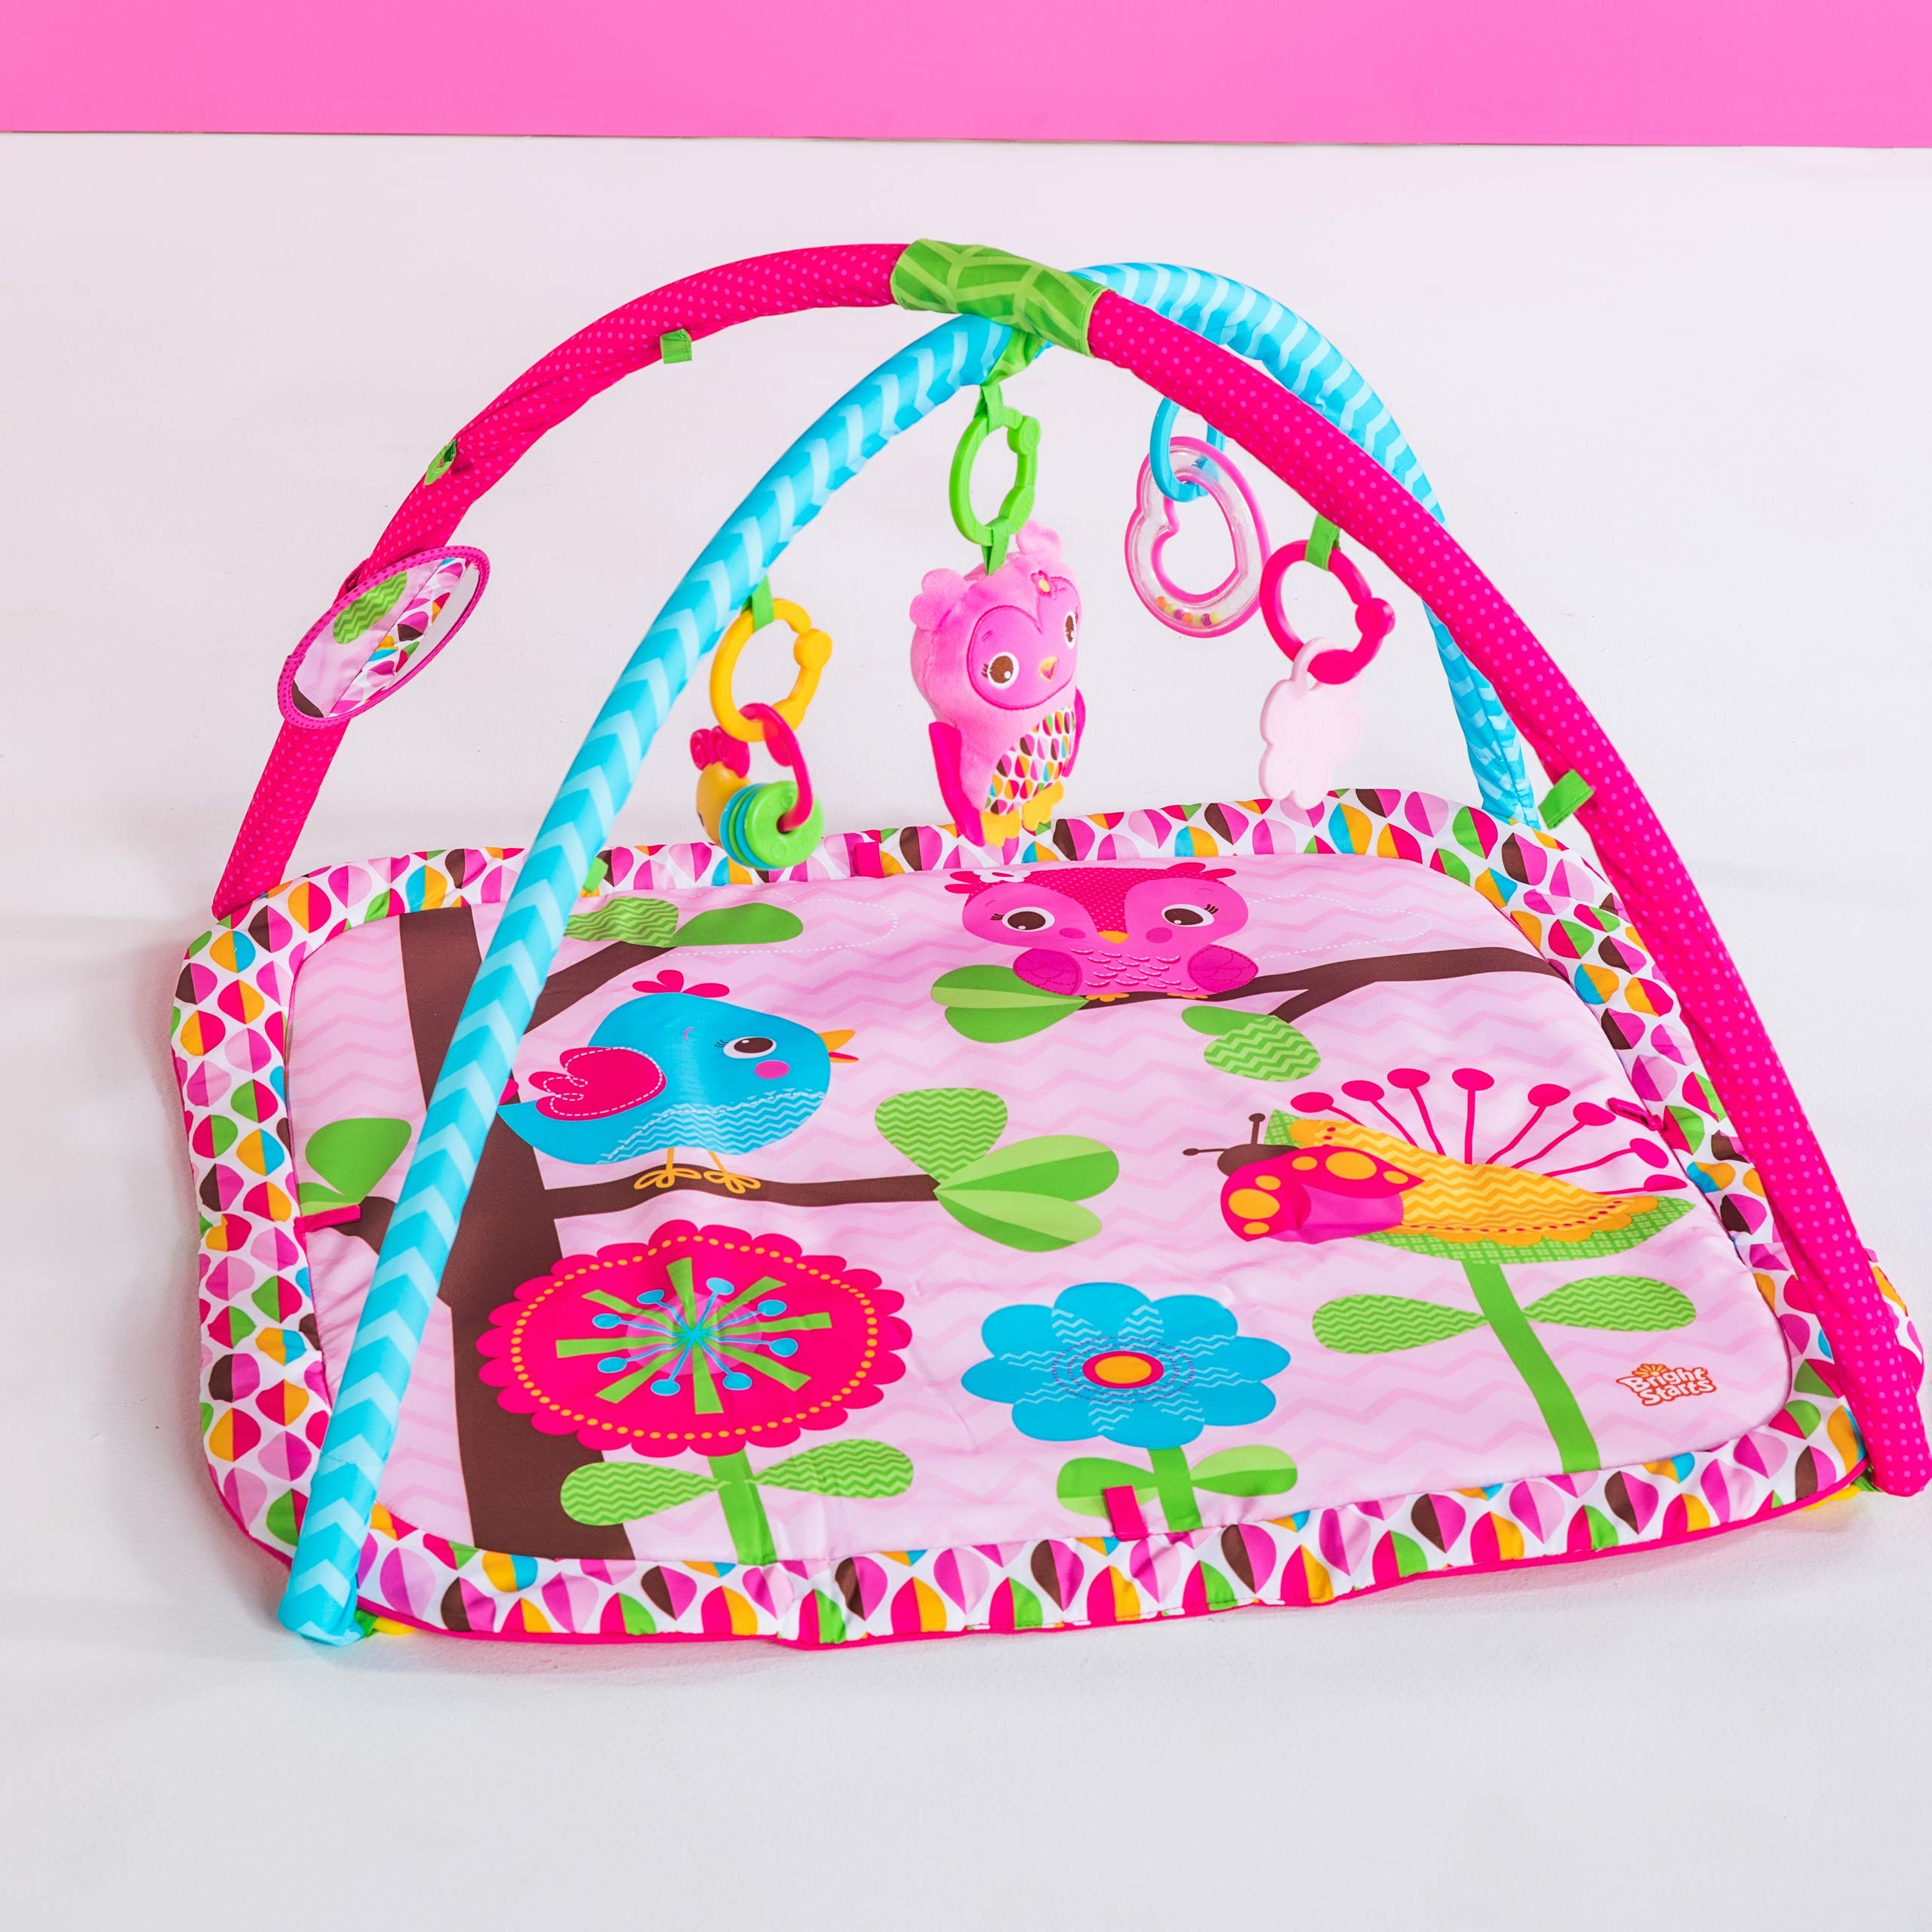 Bright Starts Charming Chirps Activity Gym, Pretty In Pink by Bright Starts (Image #3)